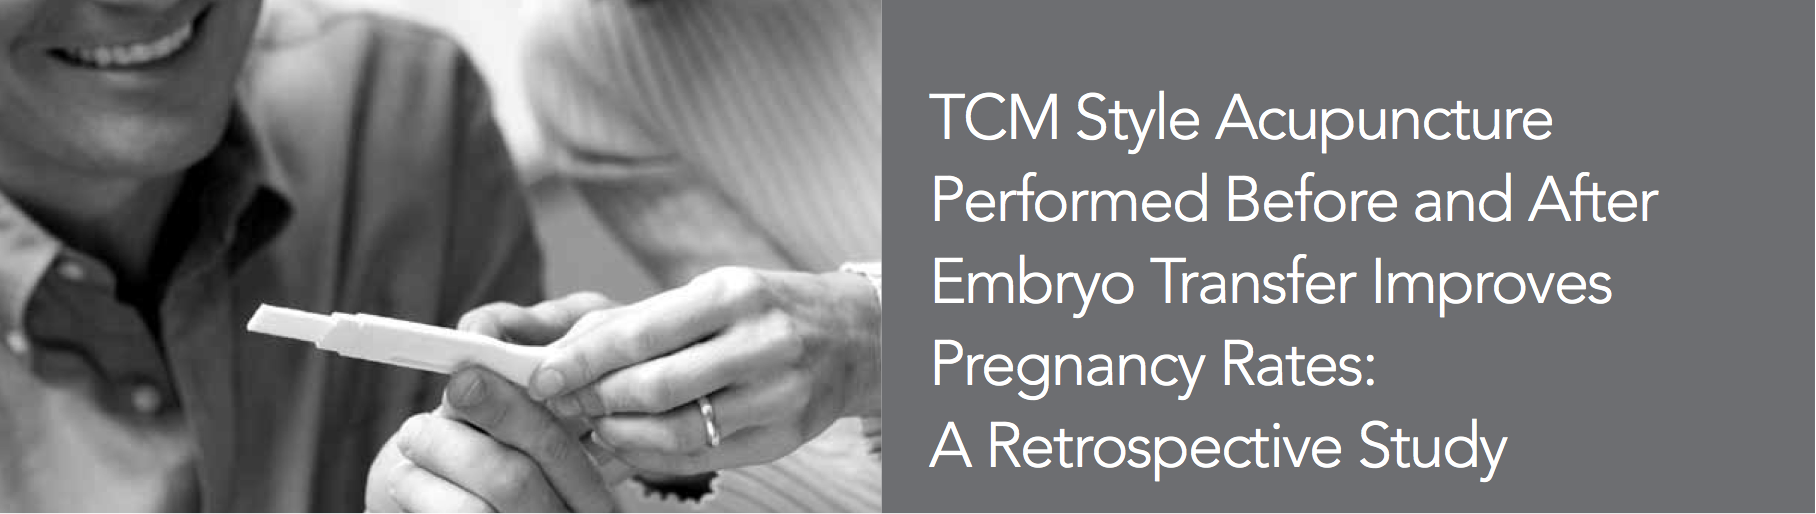 Acupuncture done before and after embryo transfer increases pregnancy rates up to 57%.